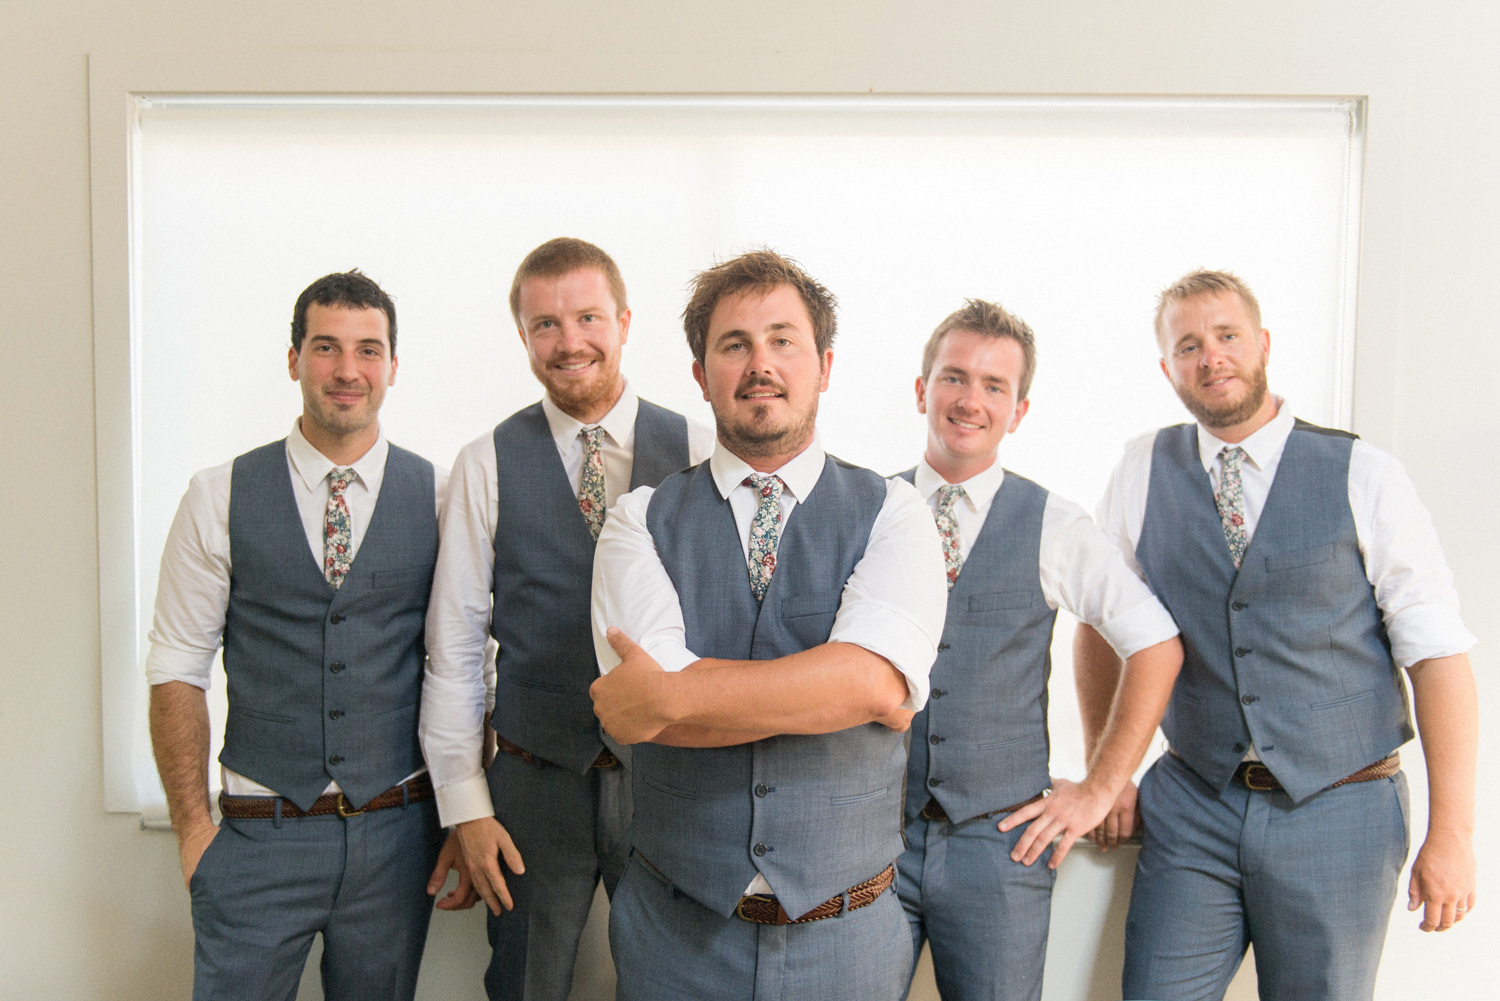 Groomsmen get ready at Allure Resort, Straddie